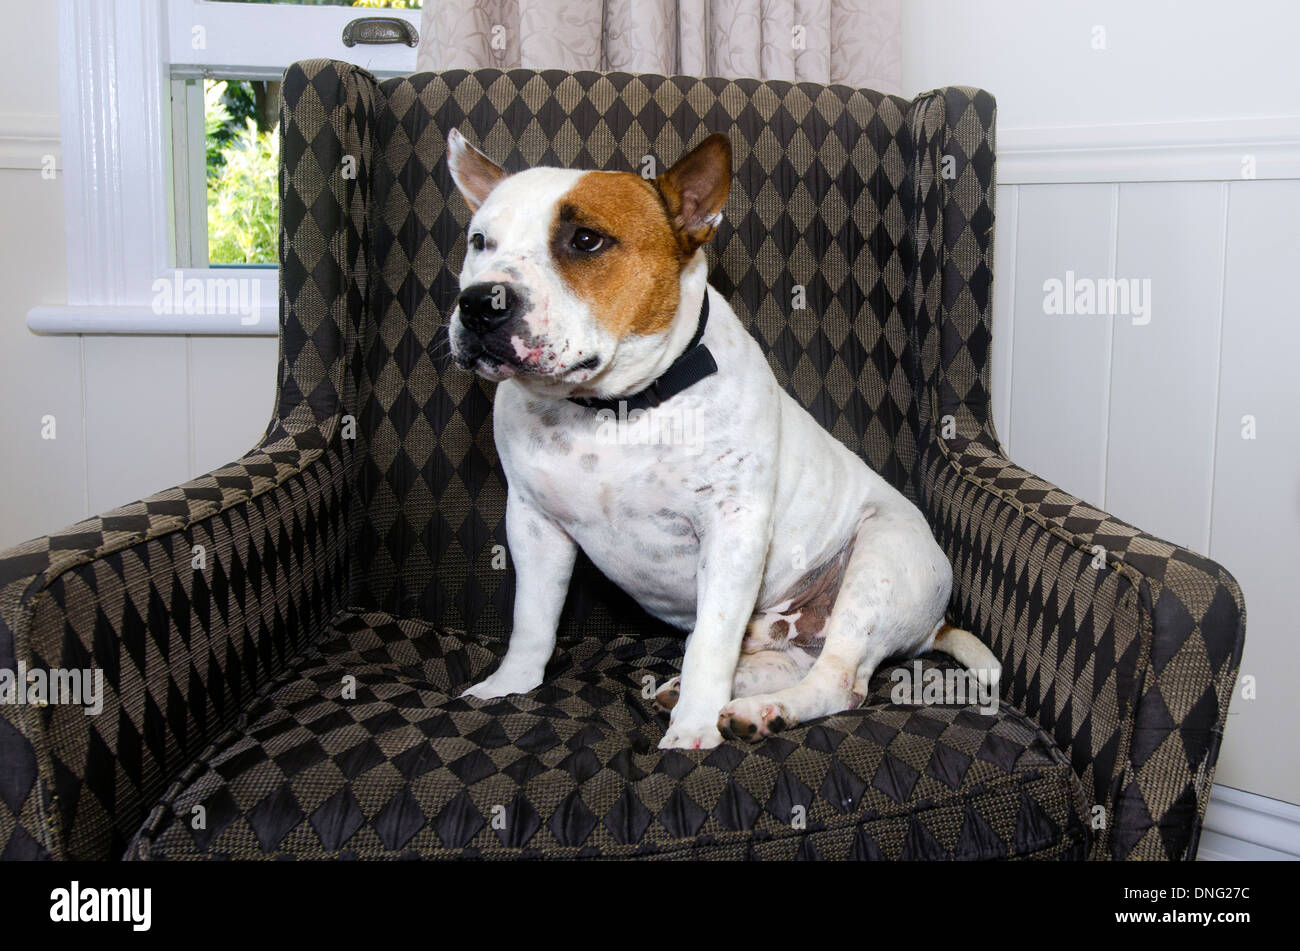 Staffordshire Bull Terrier sit on a chair. - Stock Image